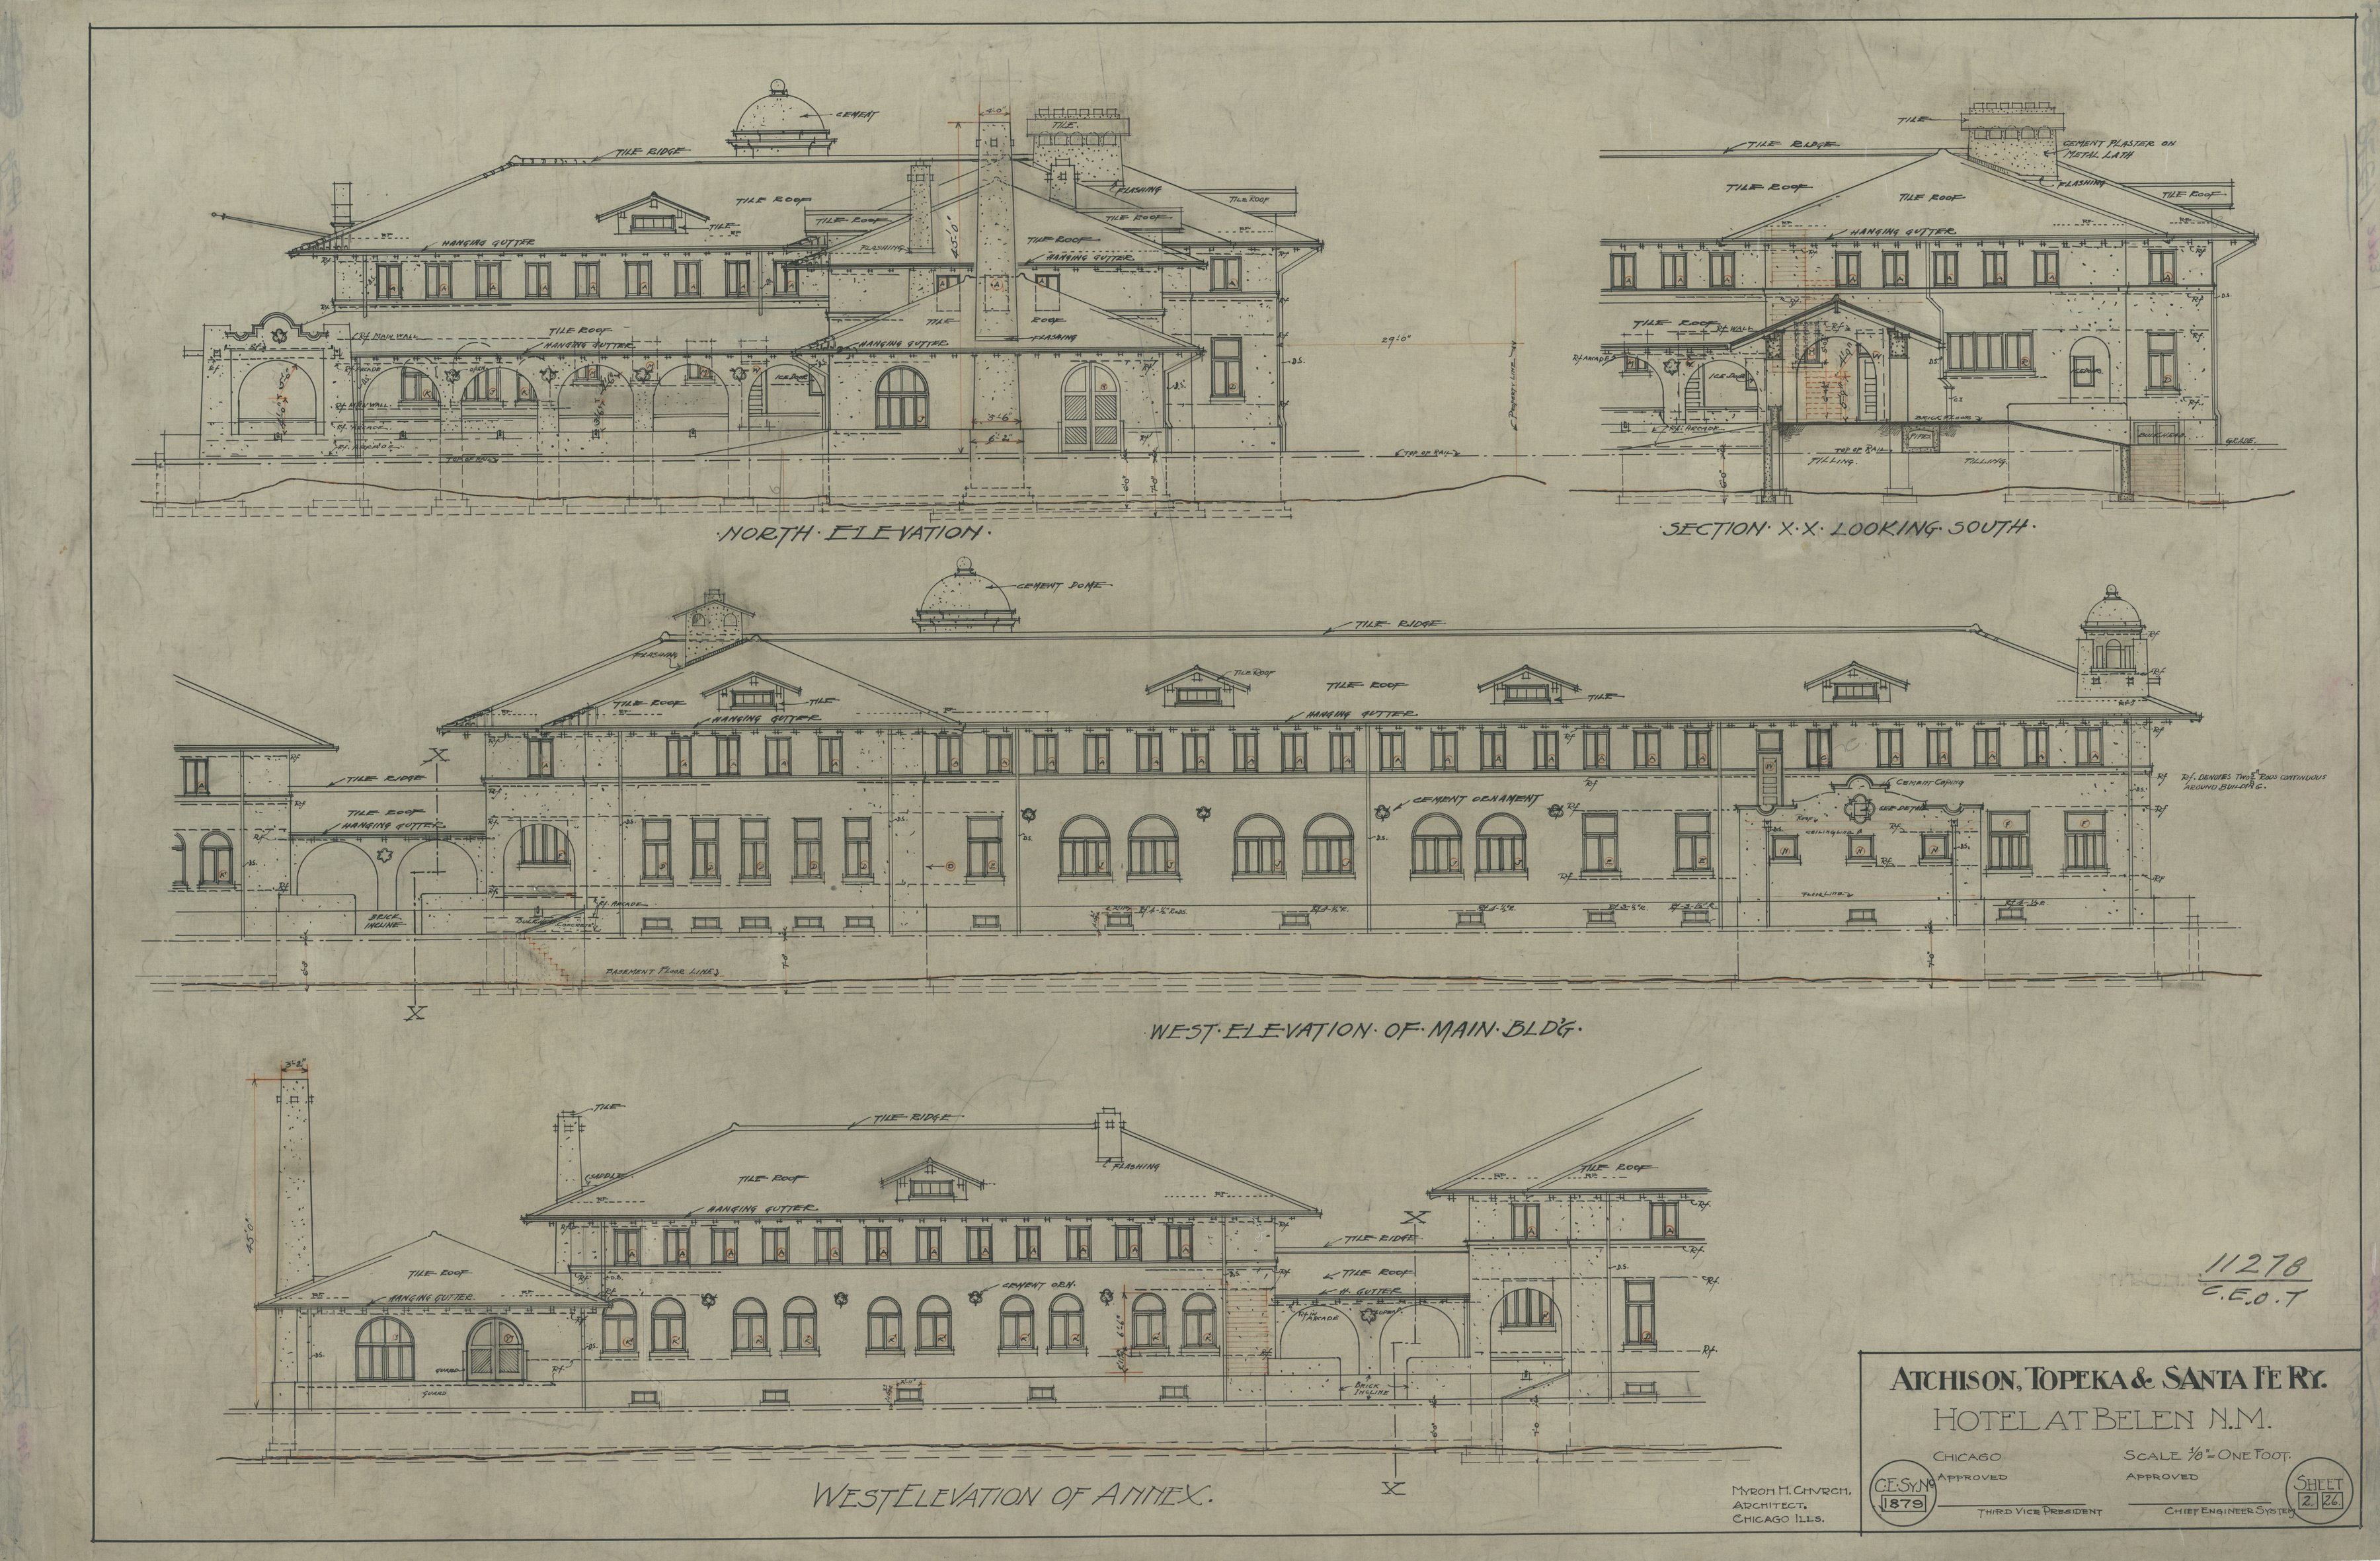 AT&SF Company hotel, Belen, New Mexico - North, West Elevation, Main Bldg. 1879